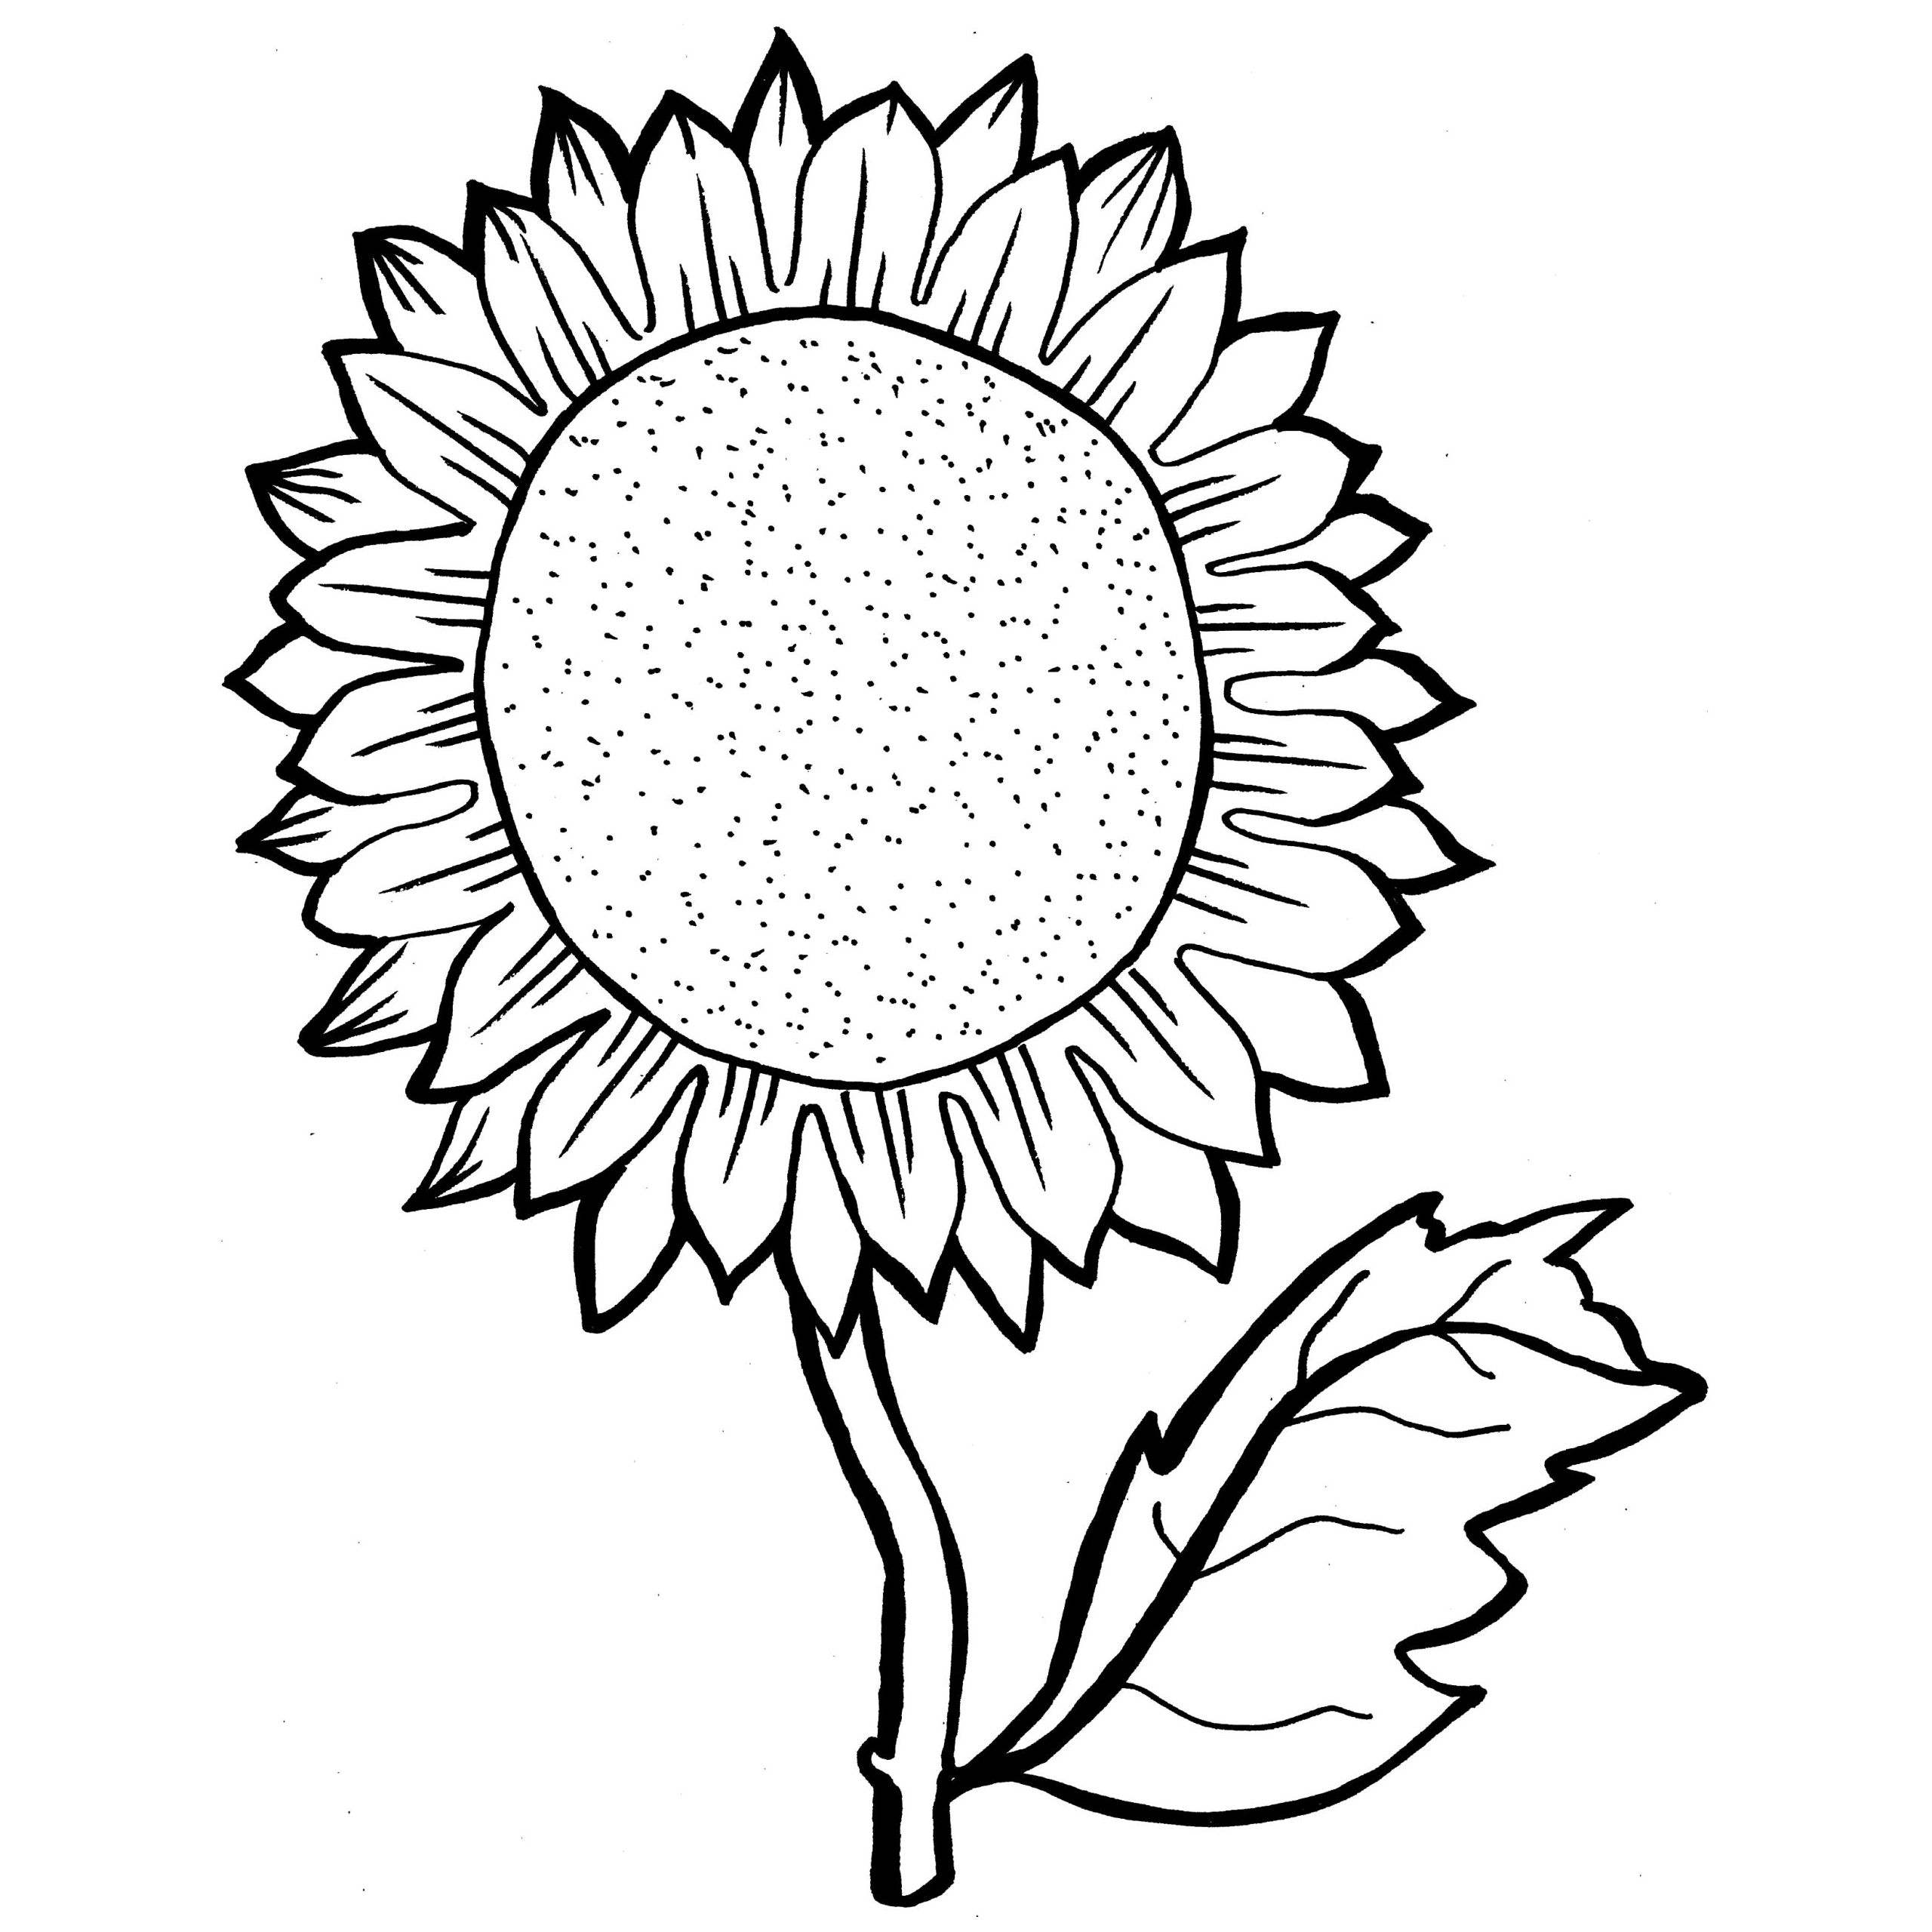 sunflower coloring pages to print free printable sunflower coloring pages for kids print pages coloring to sunflower